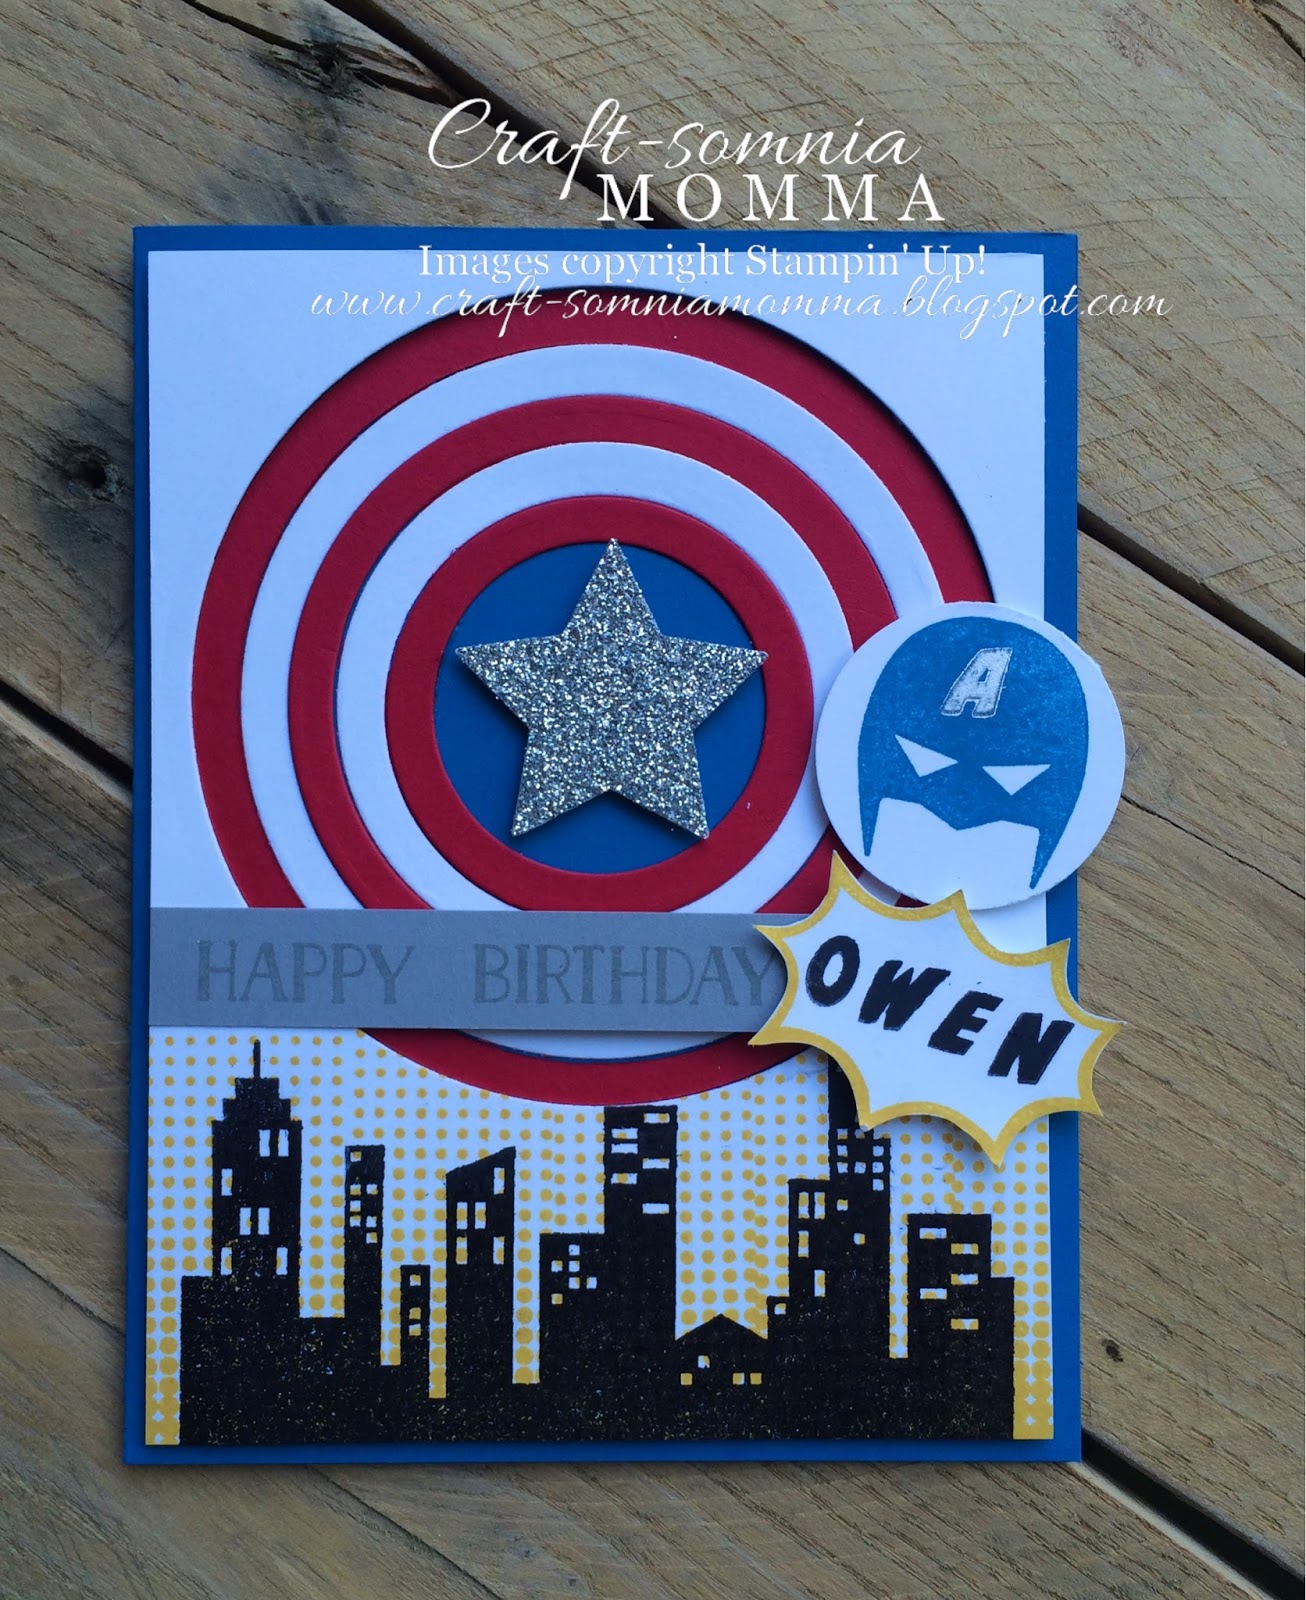 Craft somnia momma a super hero 4th birthday owen is all about super heros these days so i just had to make him a captain america his favorite birthday card bookmarktalkfo Image collections